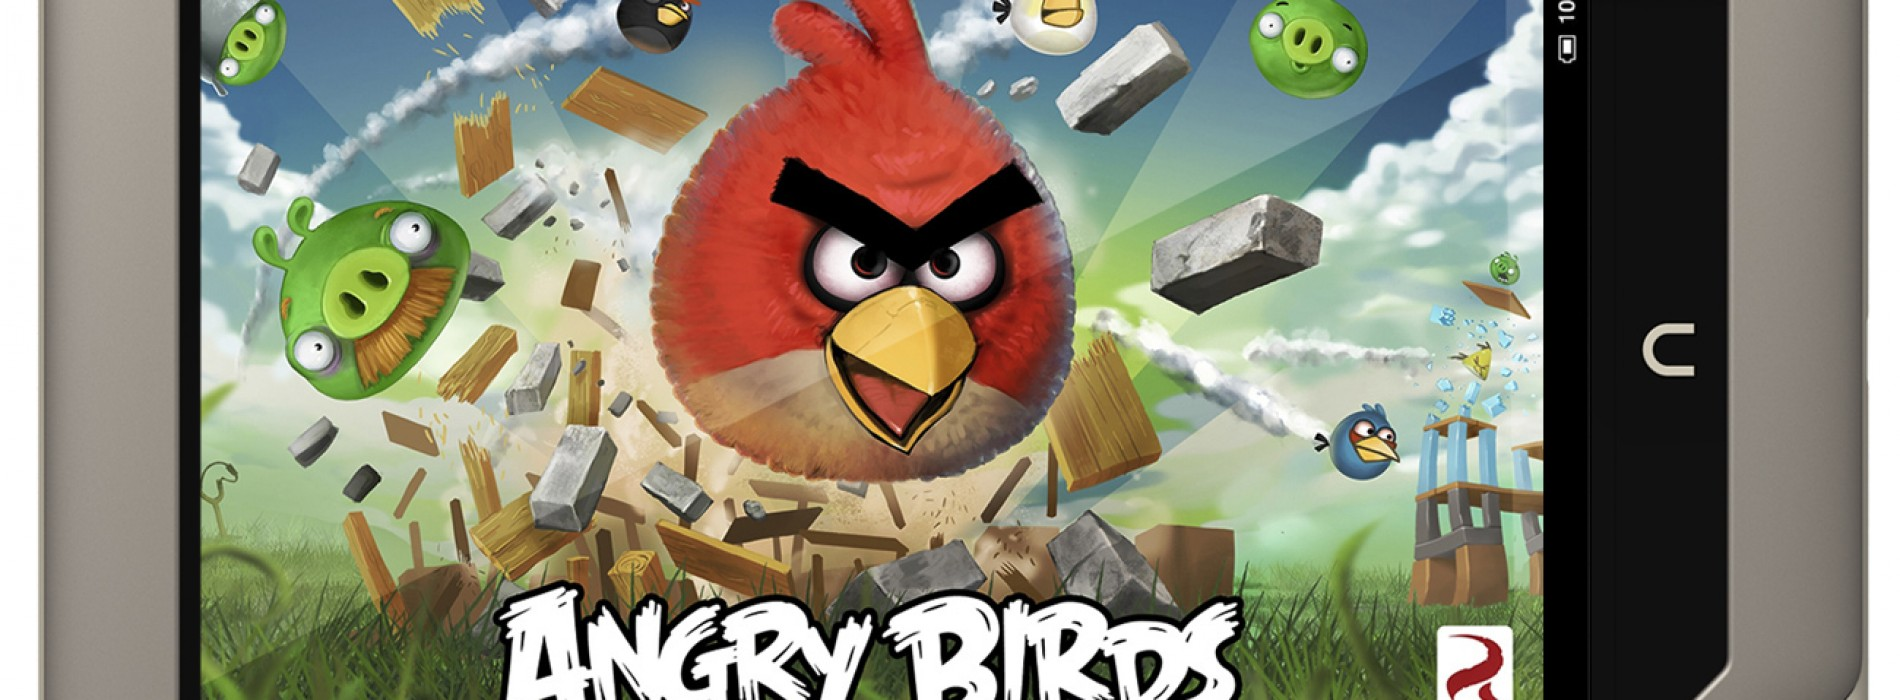 B&N celebrates Angry Birds birthday with scavenger hunt